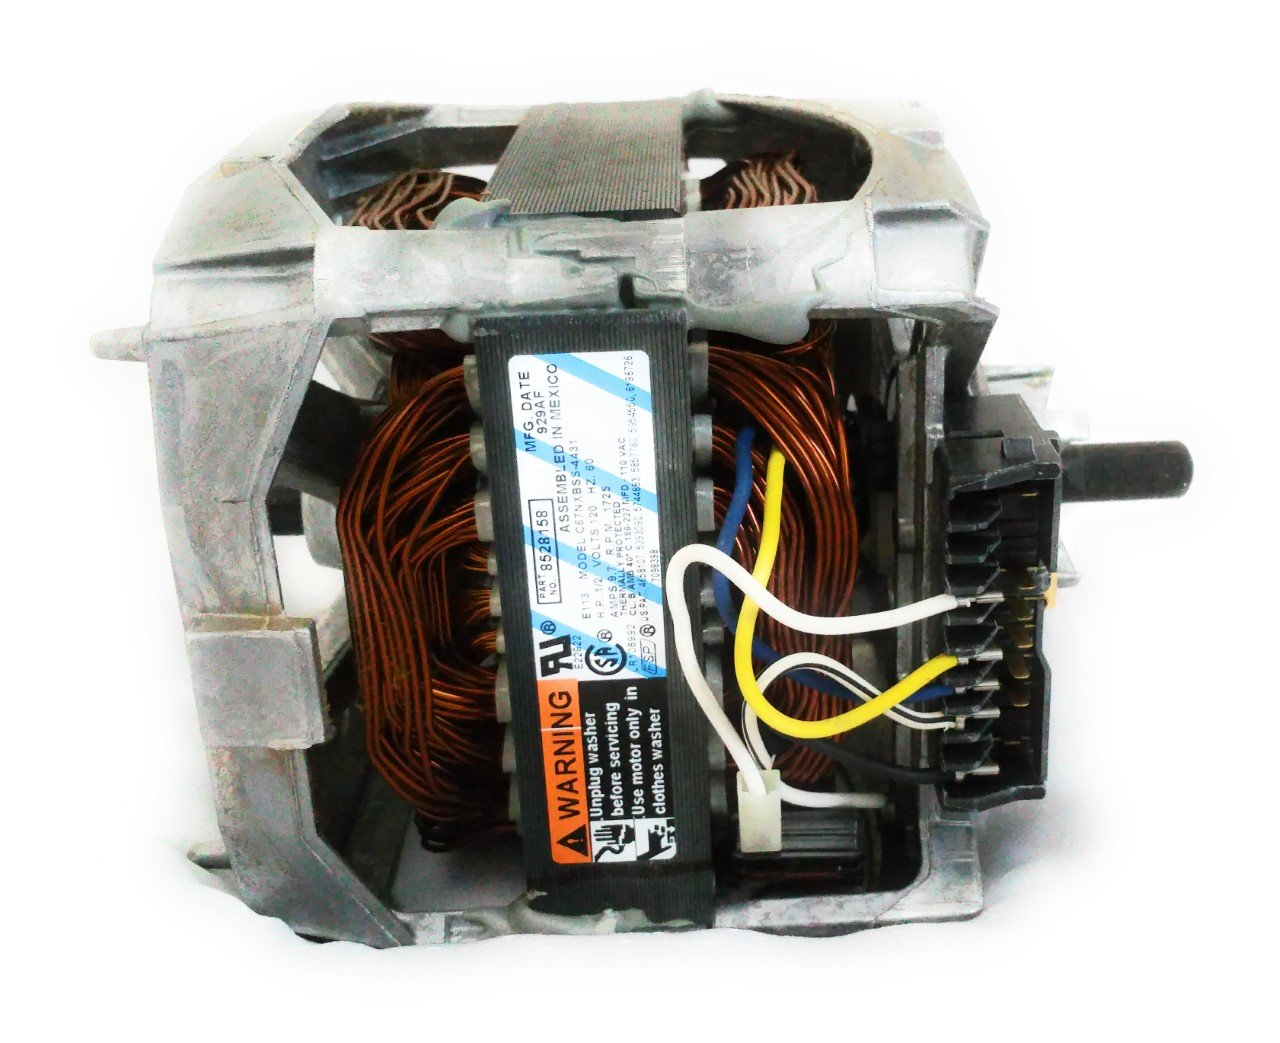 Amazon.com: Genuine OEM FSP Whirlpool Kenmore Sears Maytag Roper Estate  Washing Machine Motor Part # 8528158, 661600: Appliances